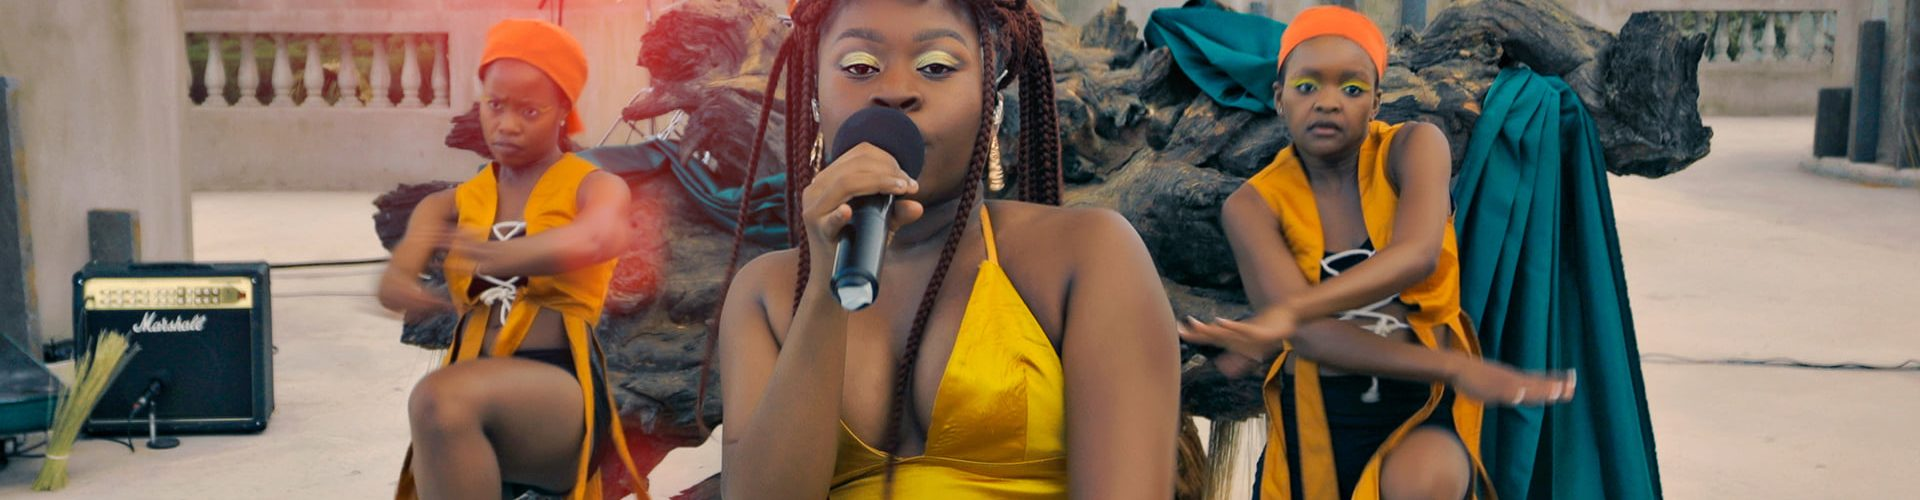 Watch Sampa the Great perform 'Final Form' live from Botswana as she bags awards at Australia's 2020 ARIA Awards